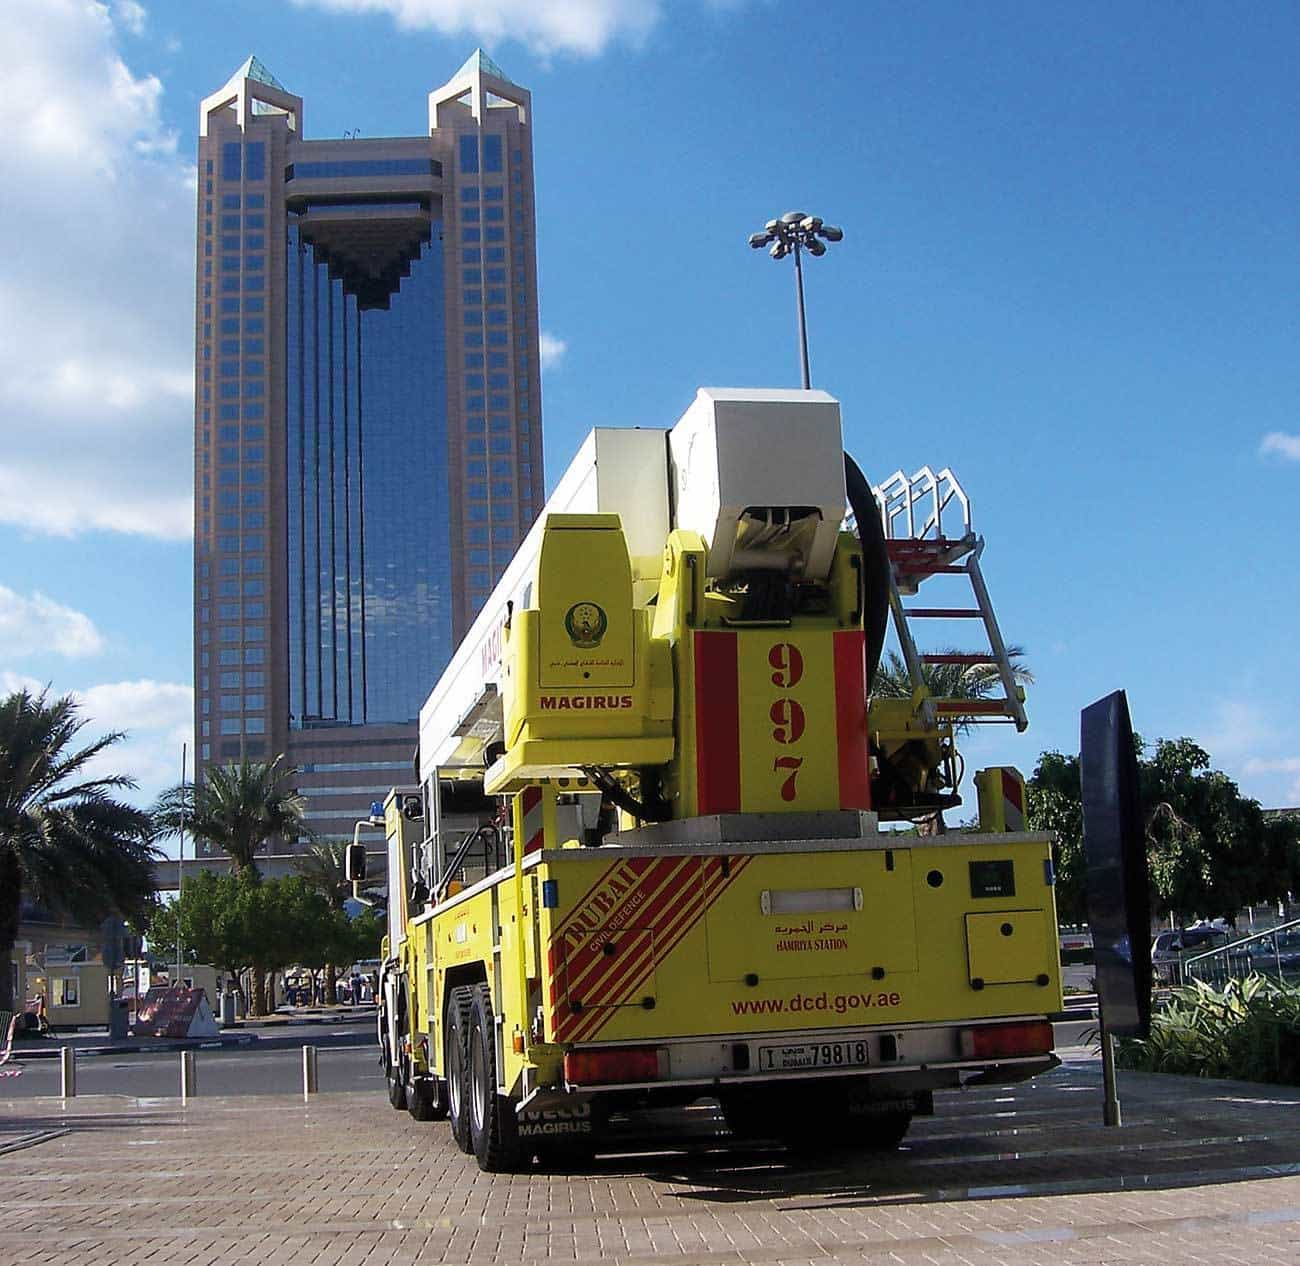 A Dubai Civil Defence 54 metre 8 x 4 Iveco Magirus Aerial Ladder Platform pictured in front of one of Dubai's iconic high rise towers, the Fairmont Hotel in Sheikh Zayed Road.